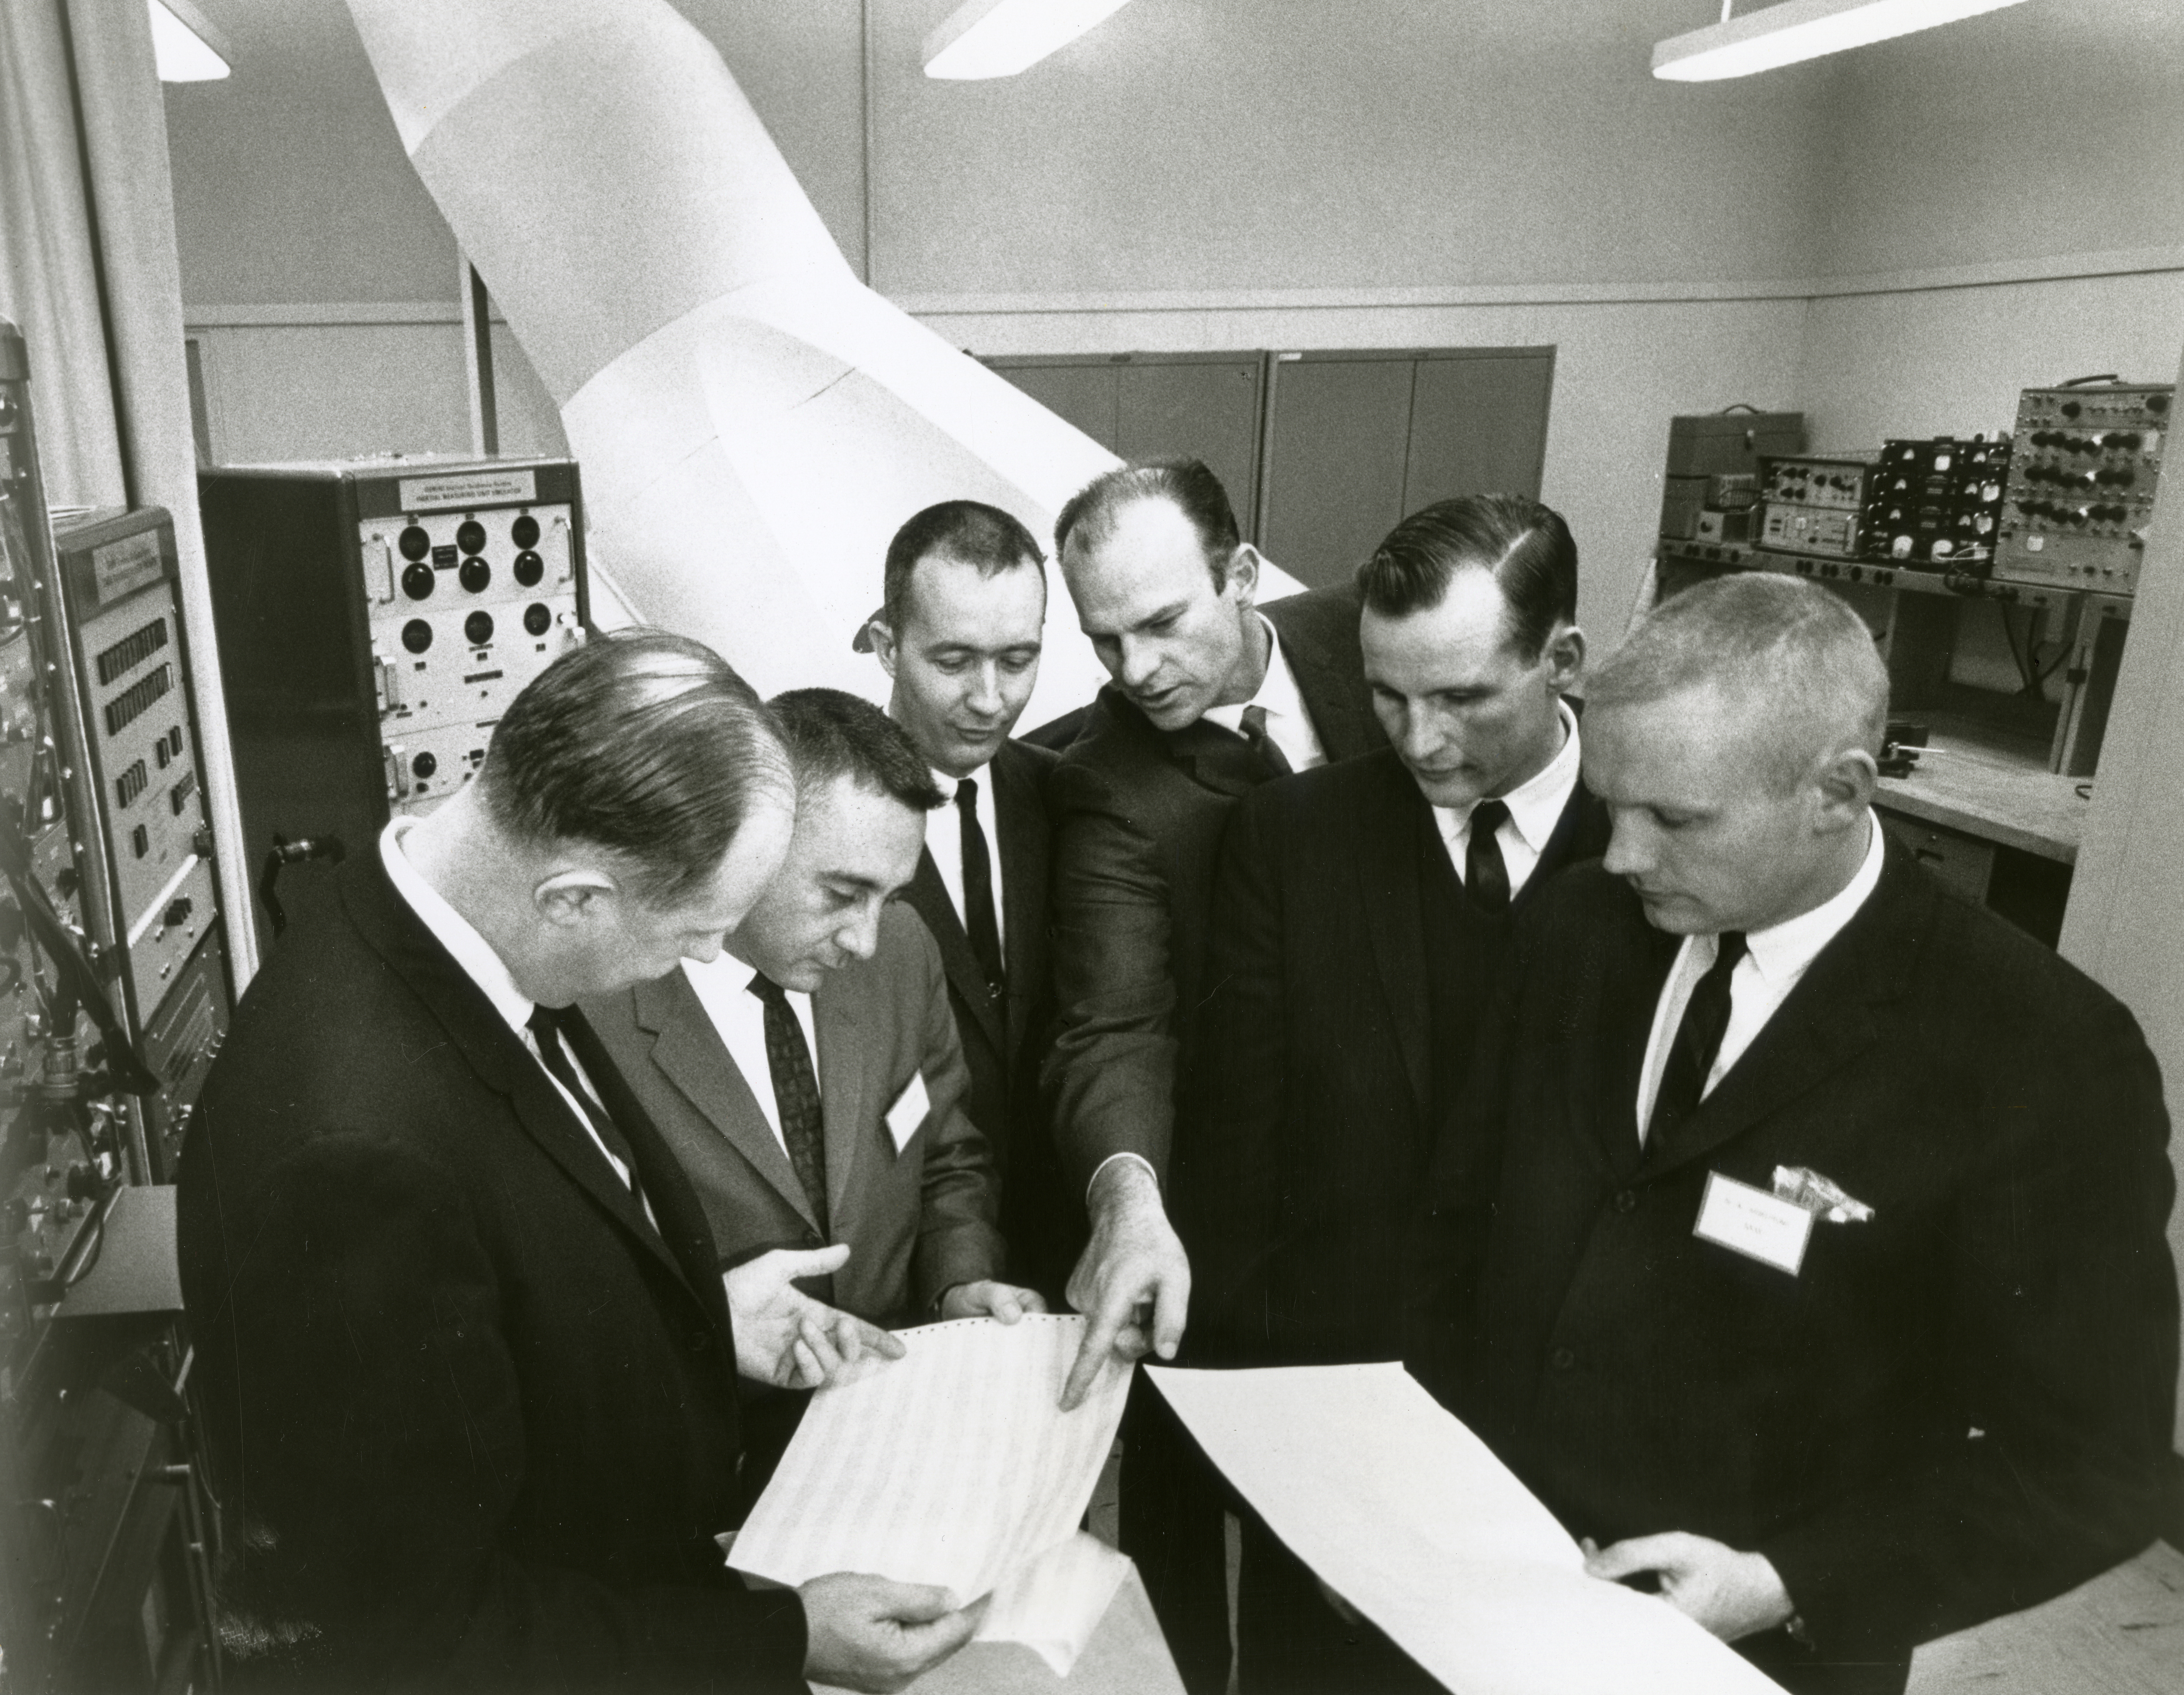 At IBM in Owego, N.Y., astronauts review printed logs of a simulated descent into earth's atmosphere. Tests at Owego used a Gemini spacecraft mockup, in background, and an IBM 7090 programmed to act like an on-board computer. Two years later, Astronaut Neil Armstrong (right) used IBM's Gemini computer to steer Gemini 8 to a safe landing in the Pacific. From left: Arthur Cooper, a leader of IBM's space program; astronaut Virgil (Gus) Grissom; astronaut James McDivitt; C.D. Babb of IBM avionics; astronaut Edward White; and astronaut Neil Armstrong.